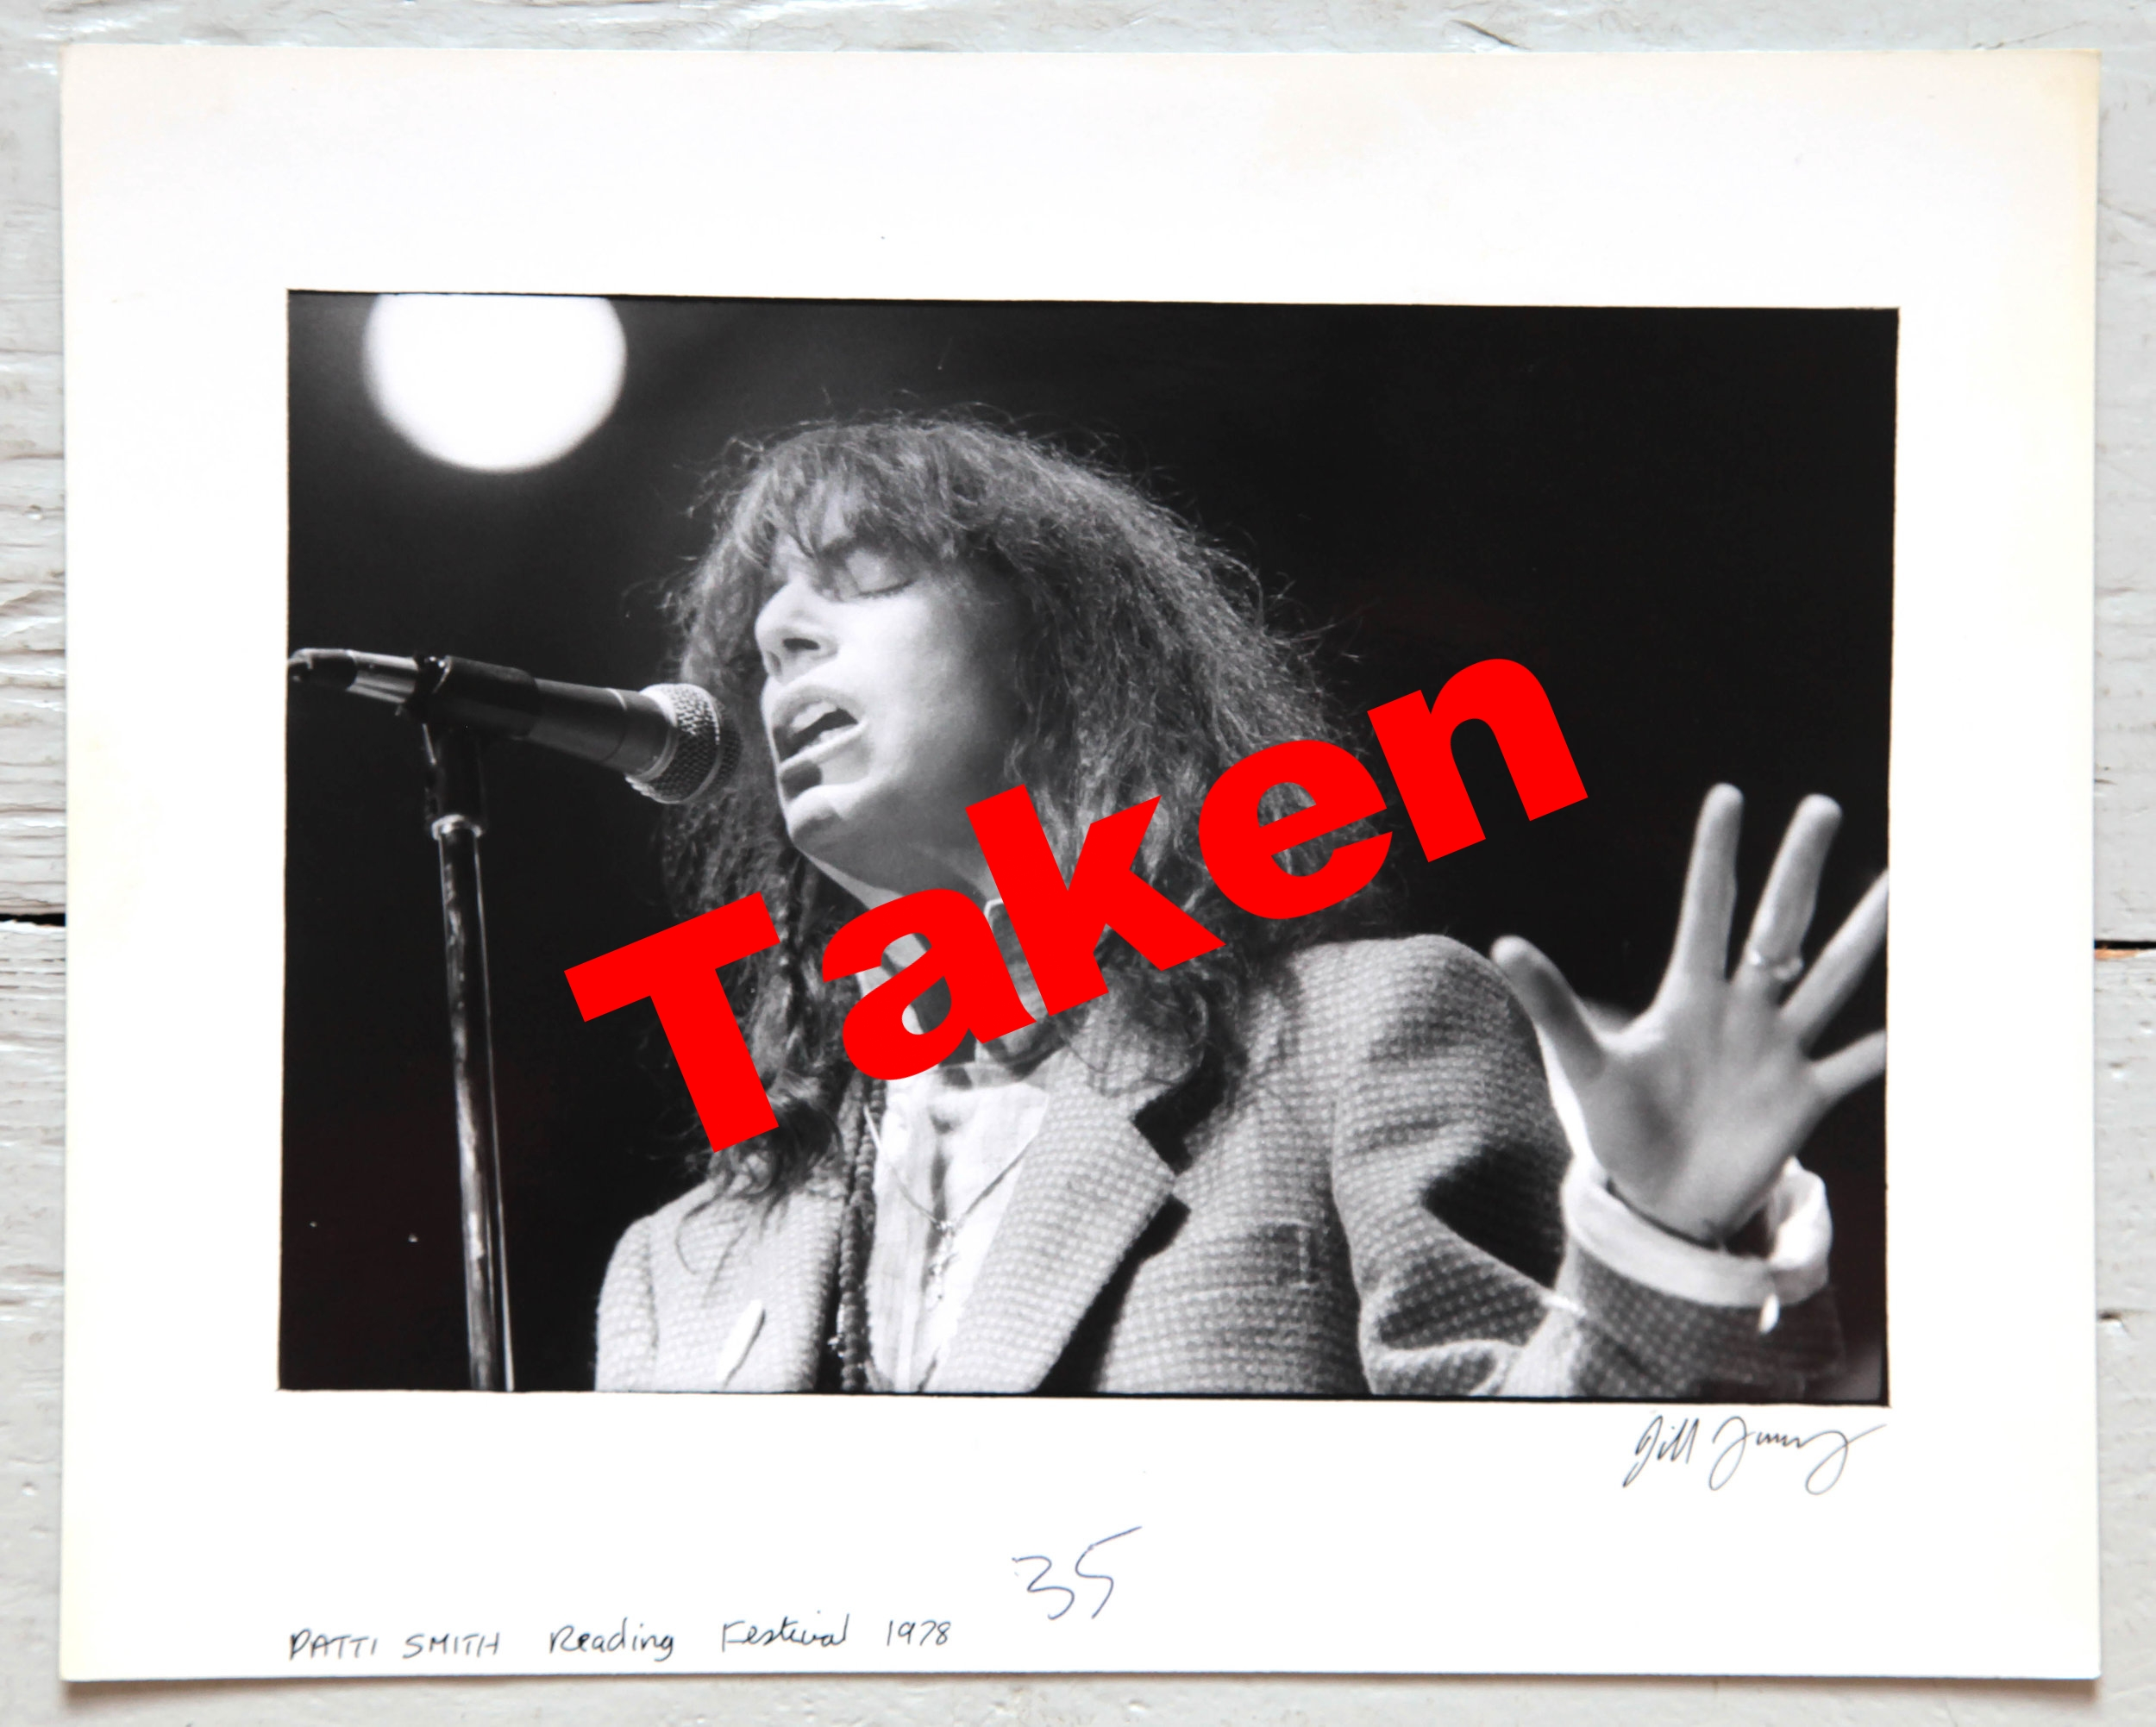 "£100 Unique 10"" x 8"" printer's proof: Patti Smith, Reading Festival, 1978. Signed by Jill Furmanovsky. - Live shot of the singer and poet during one of her early UK tours. Donated by the founder of Rock Archive from her personal collection, this proof print produced for music weekly Sounds is a one-off with original publication mark-ups on the reverse."